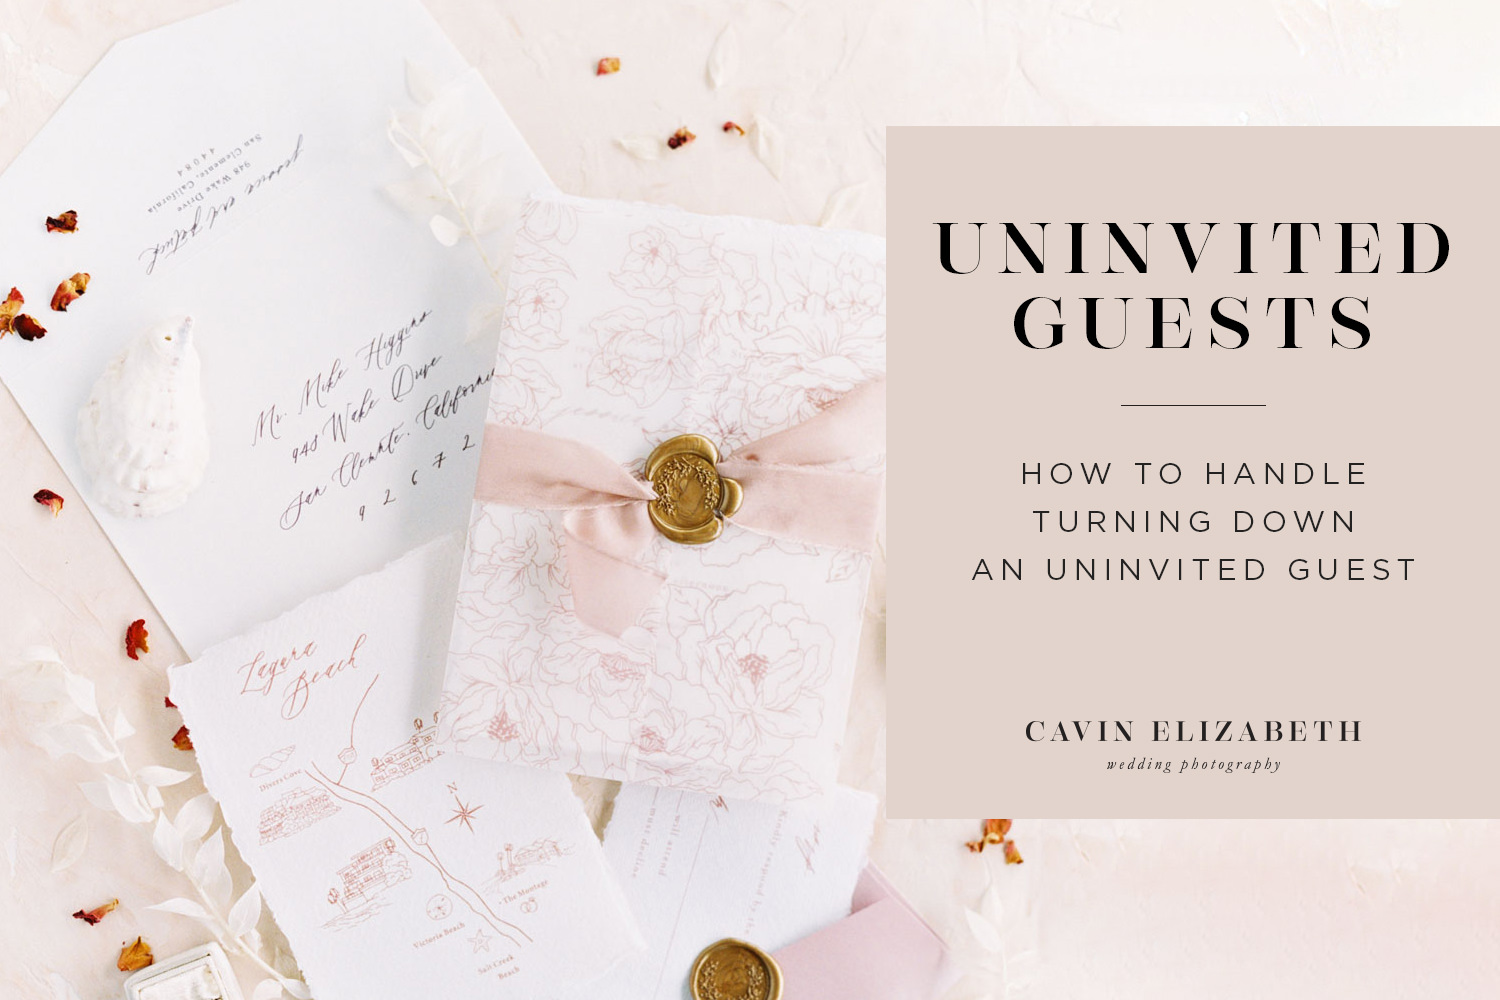 How to Handle the Uninvited Wedding Guest. What to do when someone invites themselves to your wedding and how to gently turn them down.